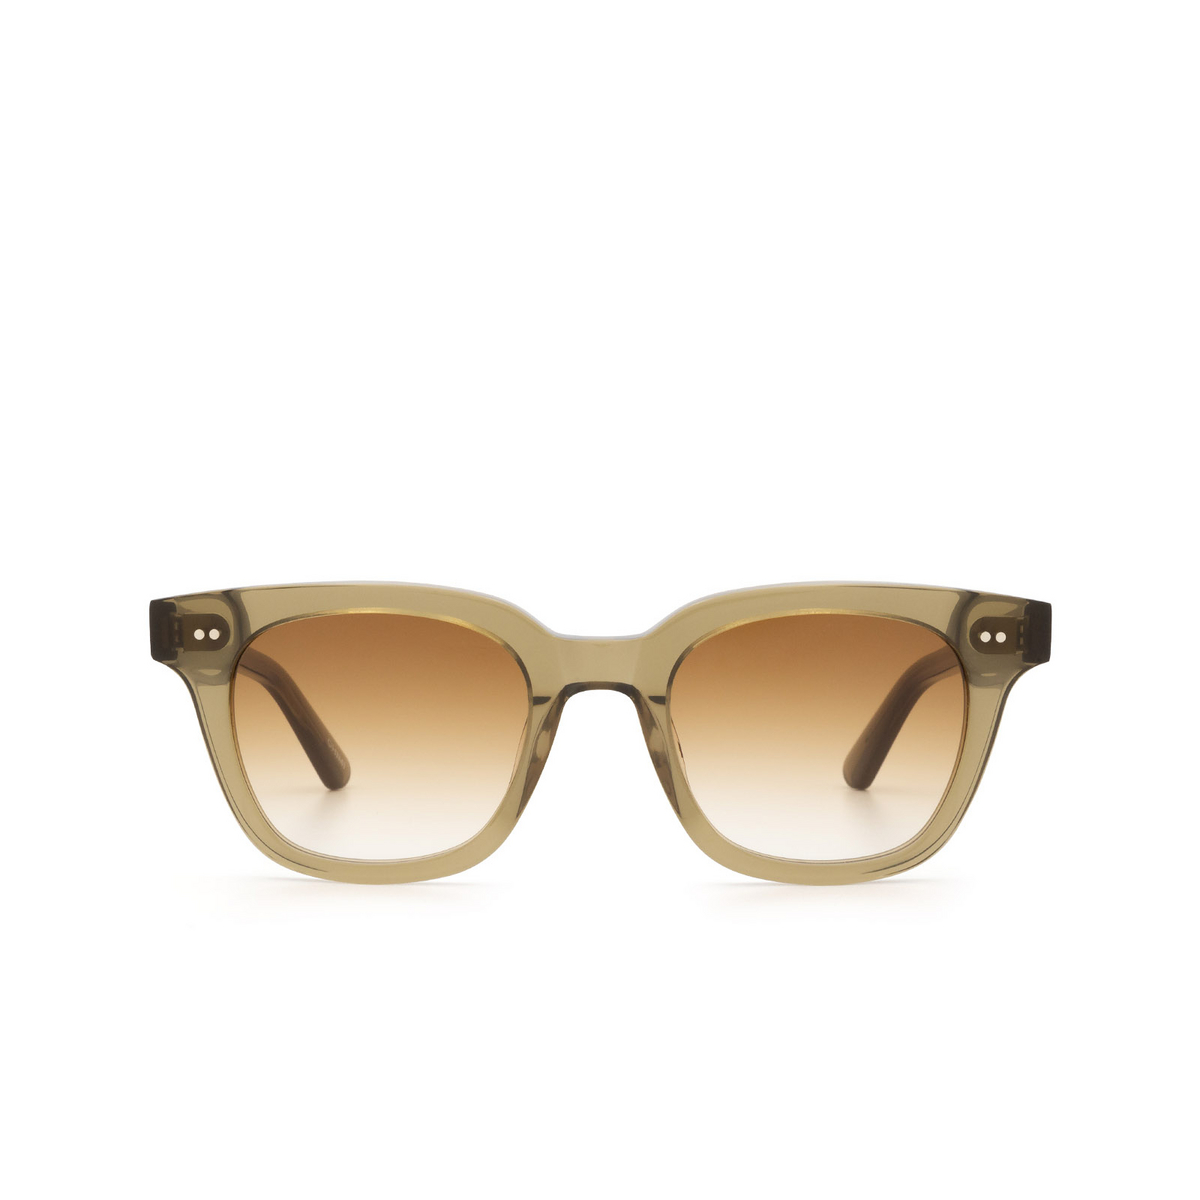 Chimi® Square Sunglasses: #101 color Olive Green Green - front view.